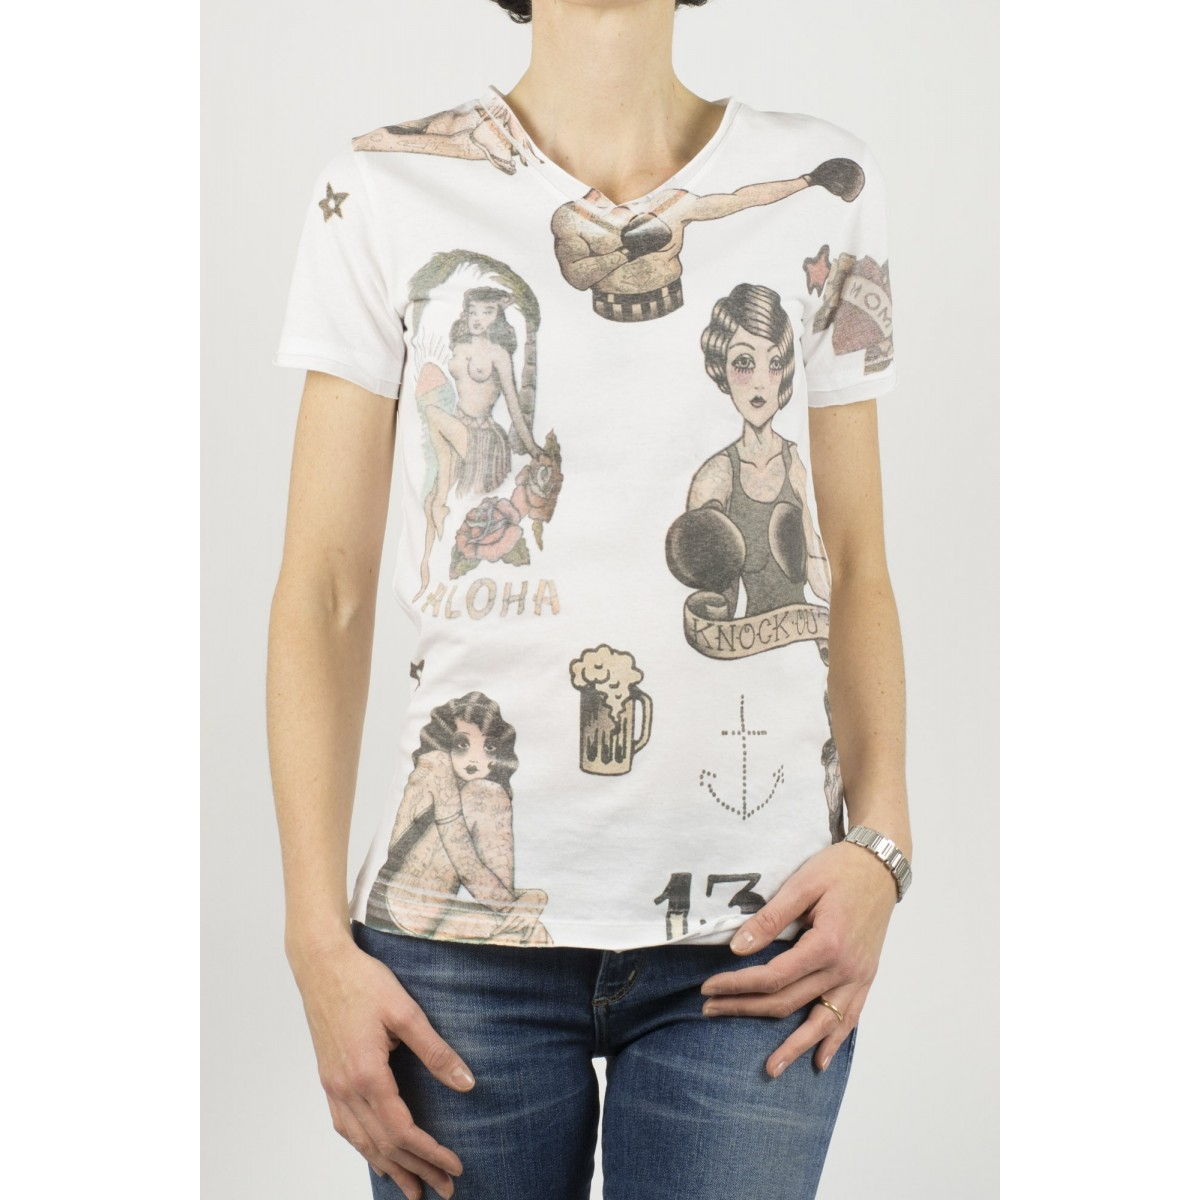 T-Shirt Hydrogen donna - 141047 001 stampa tatto